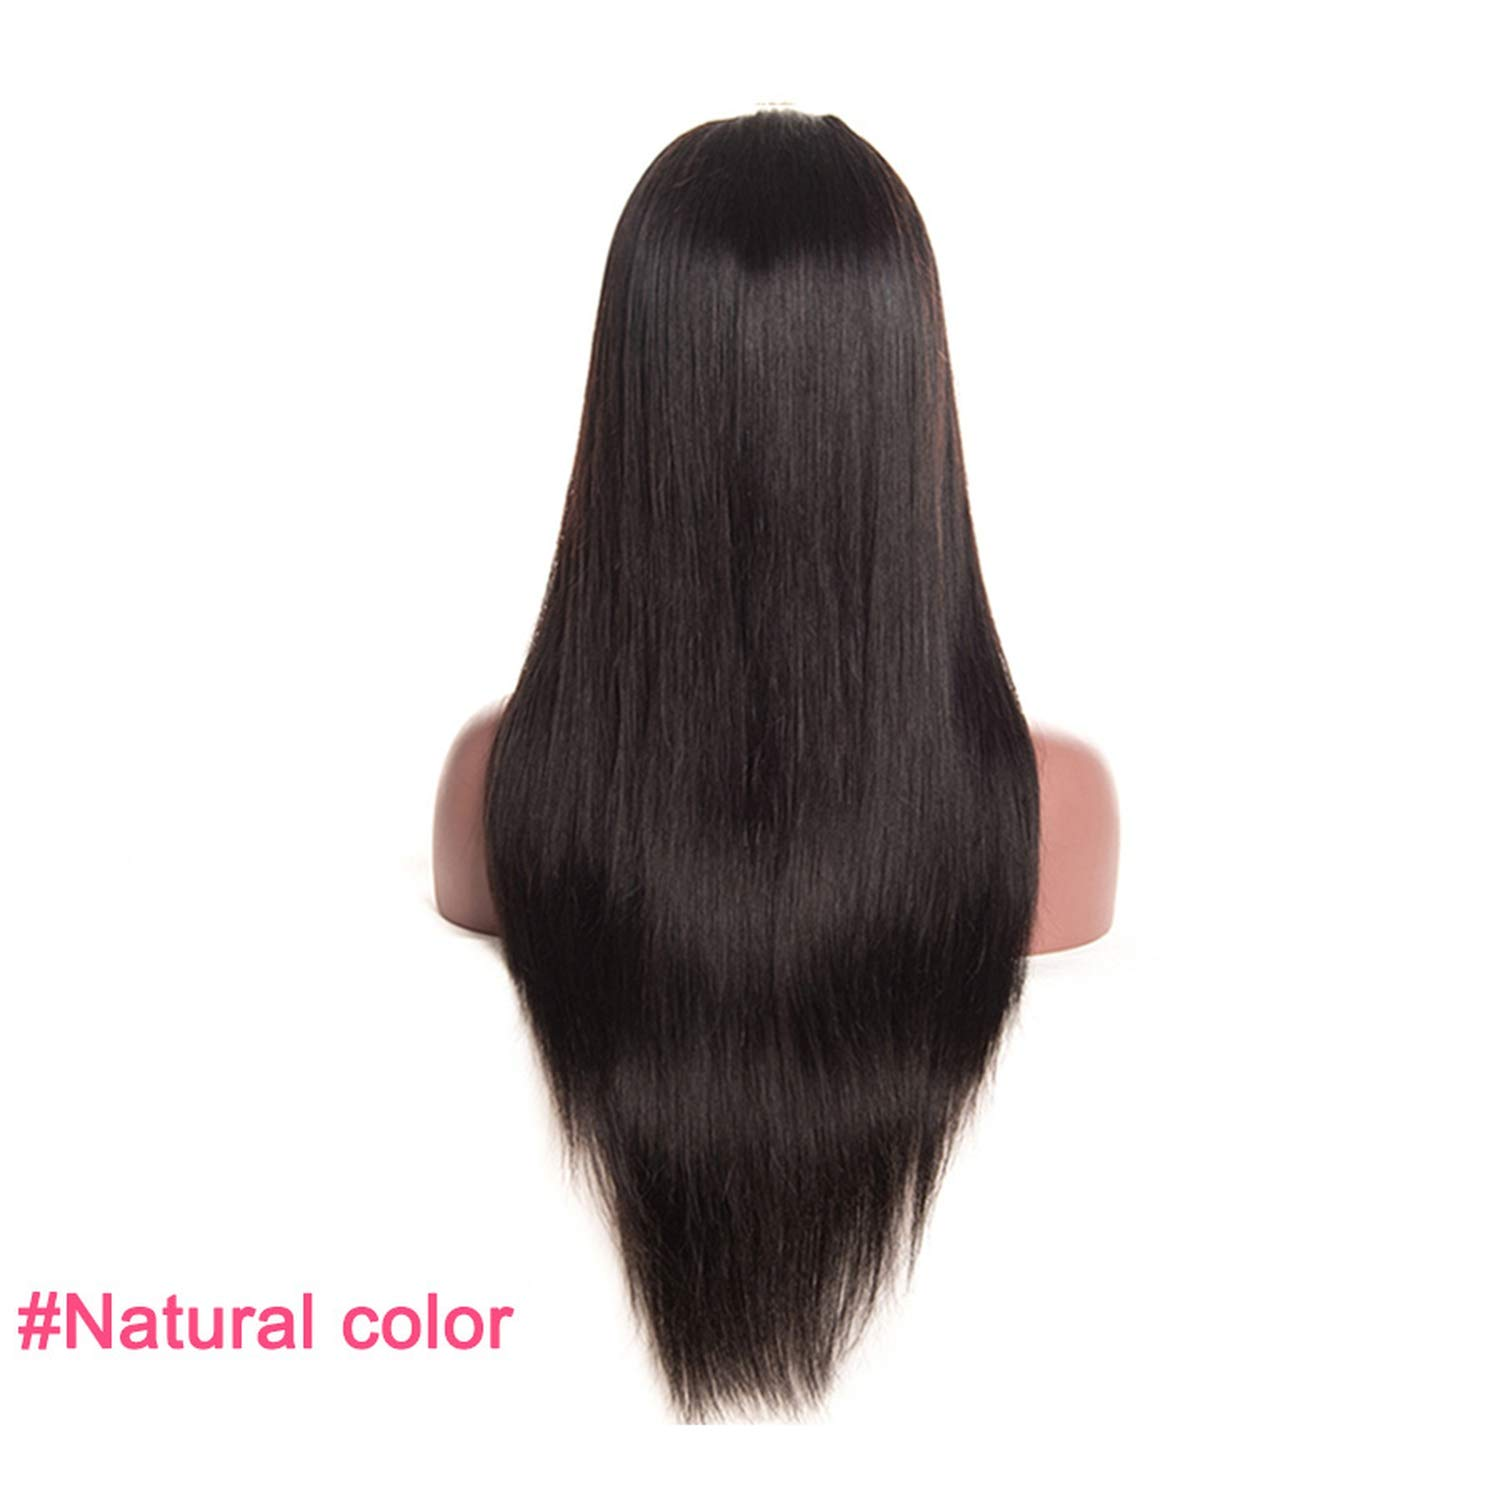 Light Brown Malaysian Straight Wig Lace Front Human Hair Wigs With Baby Hair Lace Front Wig Remy Hair #4 Pre Plucked Hairline,Natural Color,22inches,150%